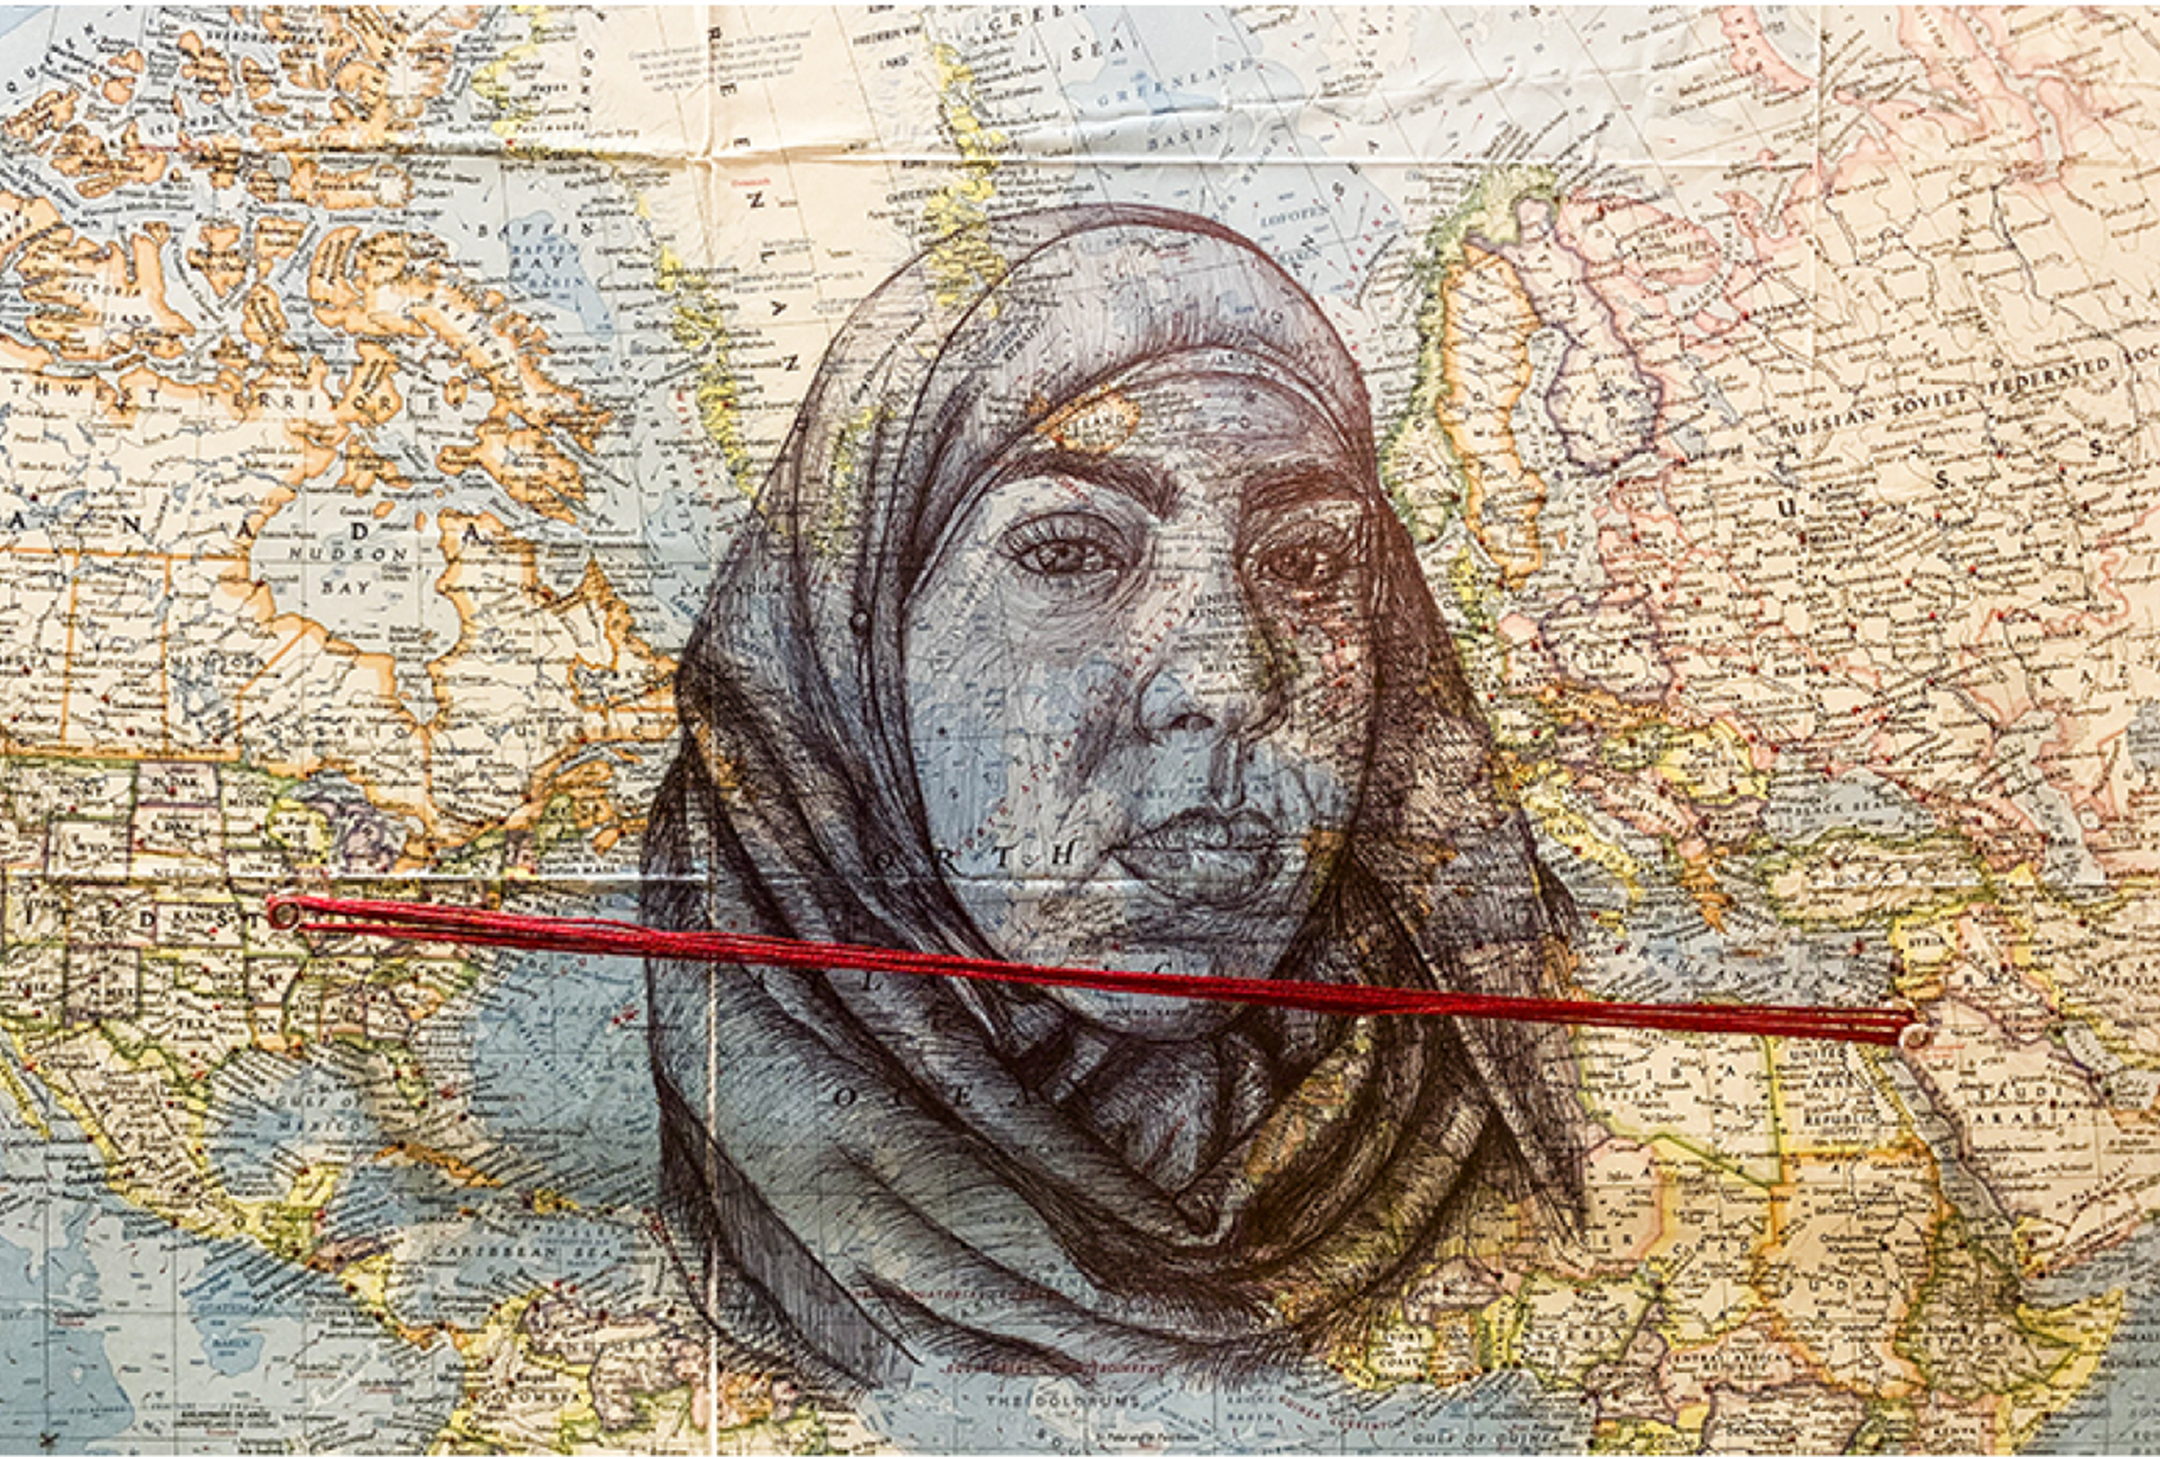 World map with a self-portrait drawn in the middle and a red thread connecting the United States and the Middle East